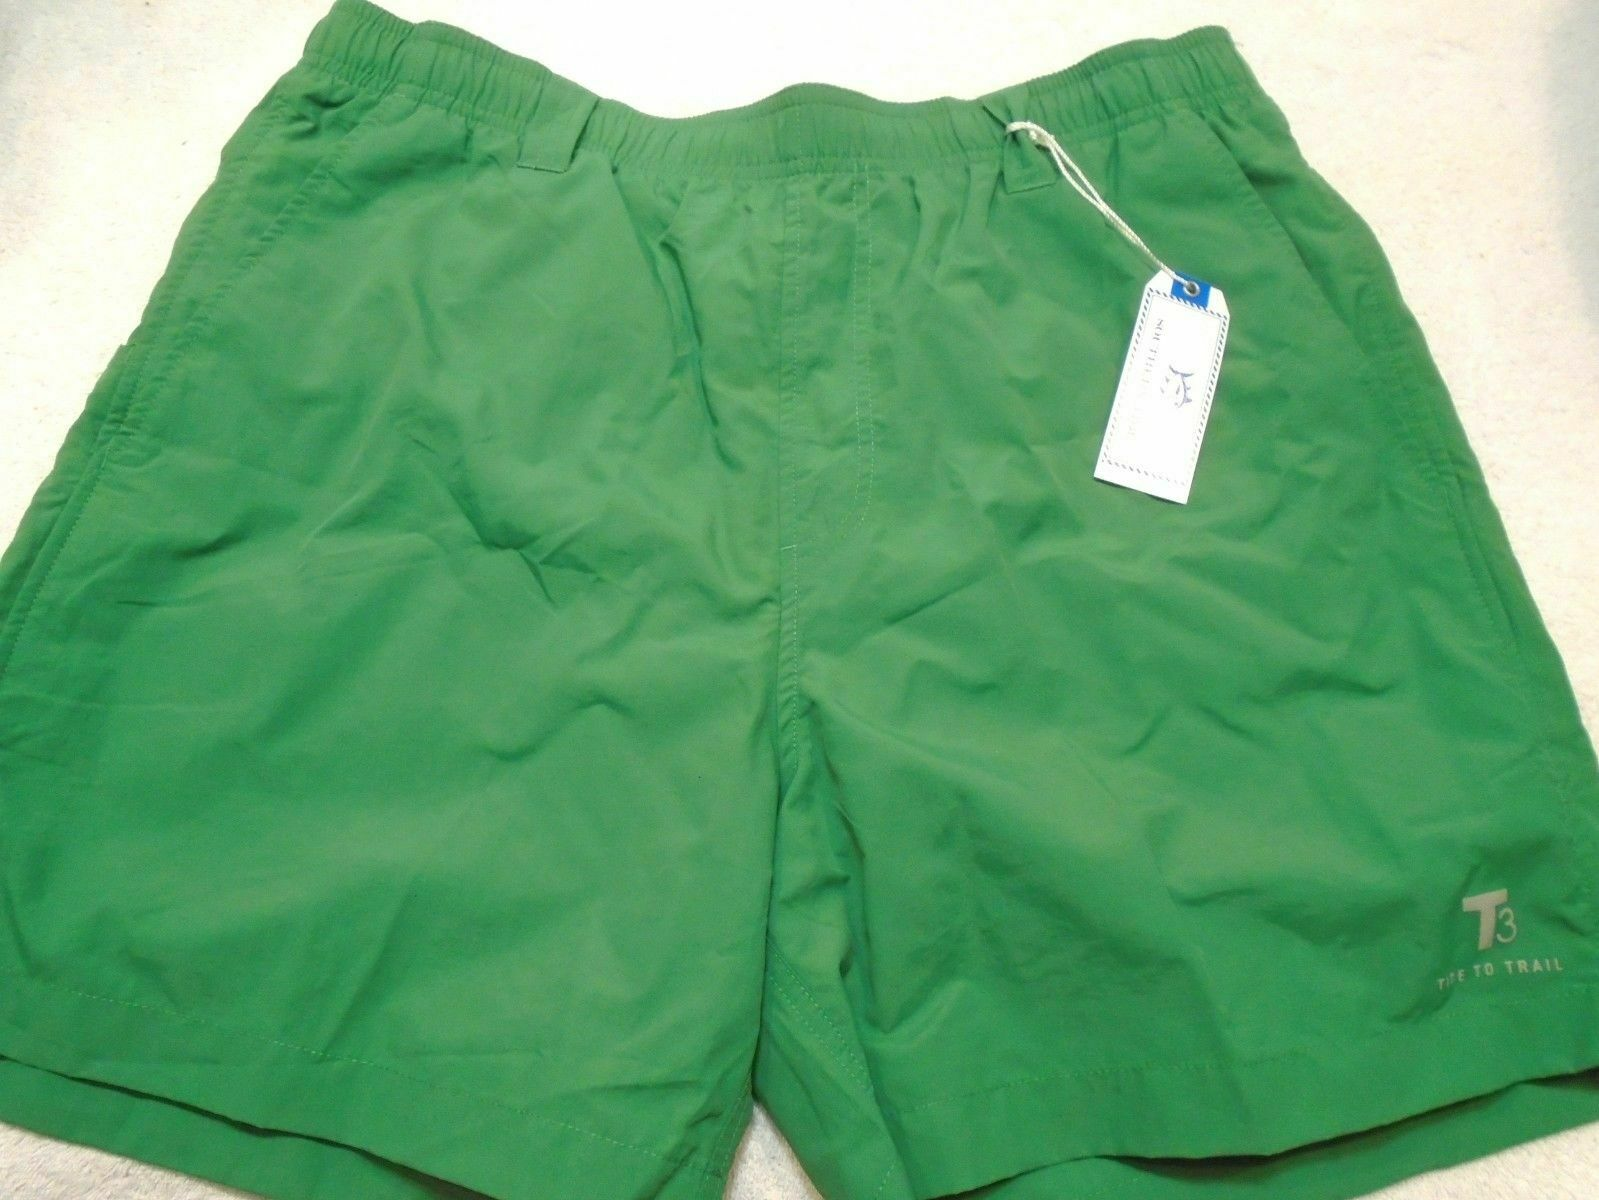 SOUTHERN TIDE TIDE TO TRAIL T3 SWIMMING TRUNKS MEN'S SIZE L GREEN